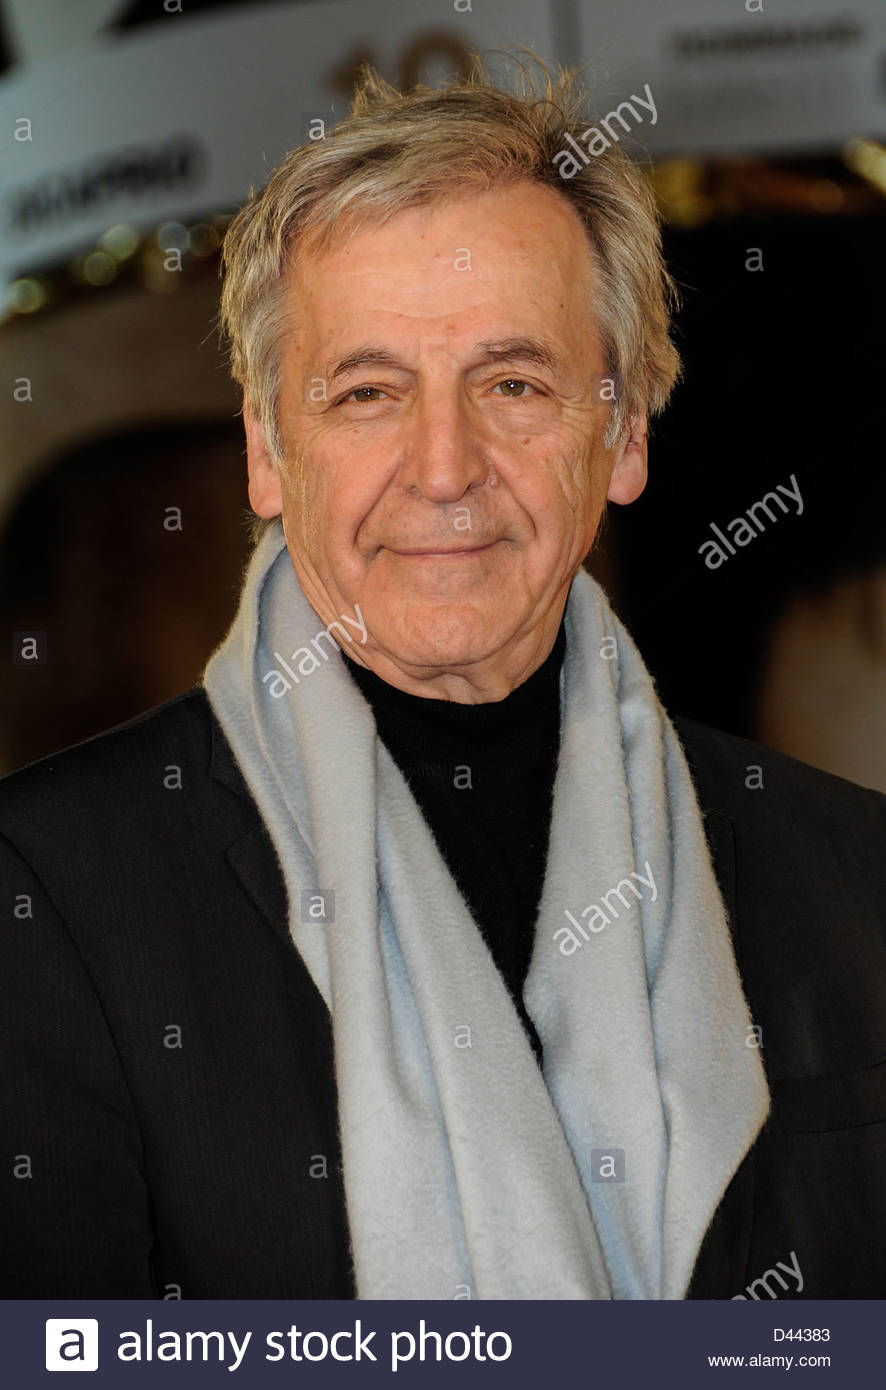 Director Costa Gavras arrives Festival International Film Marrakech  ©William Stevens - Stock Image